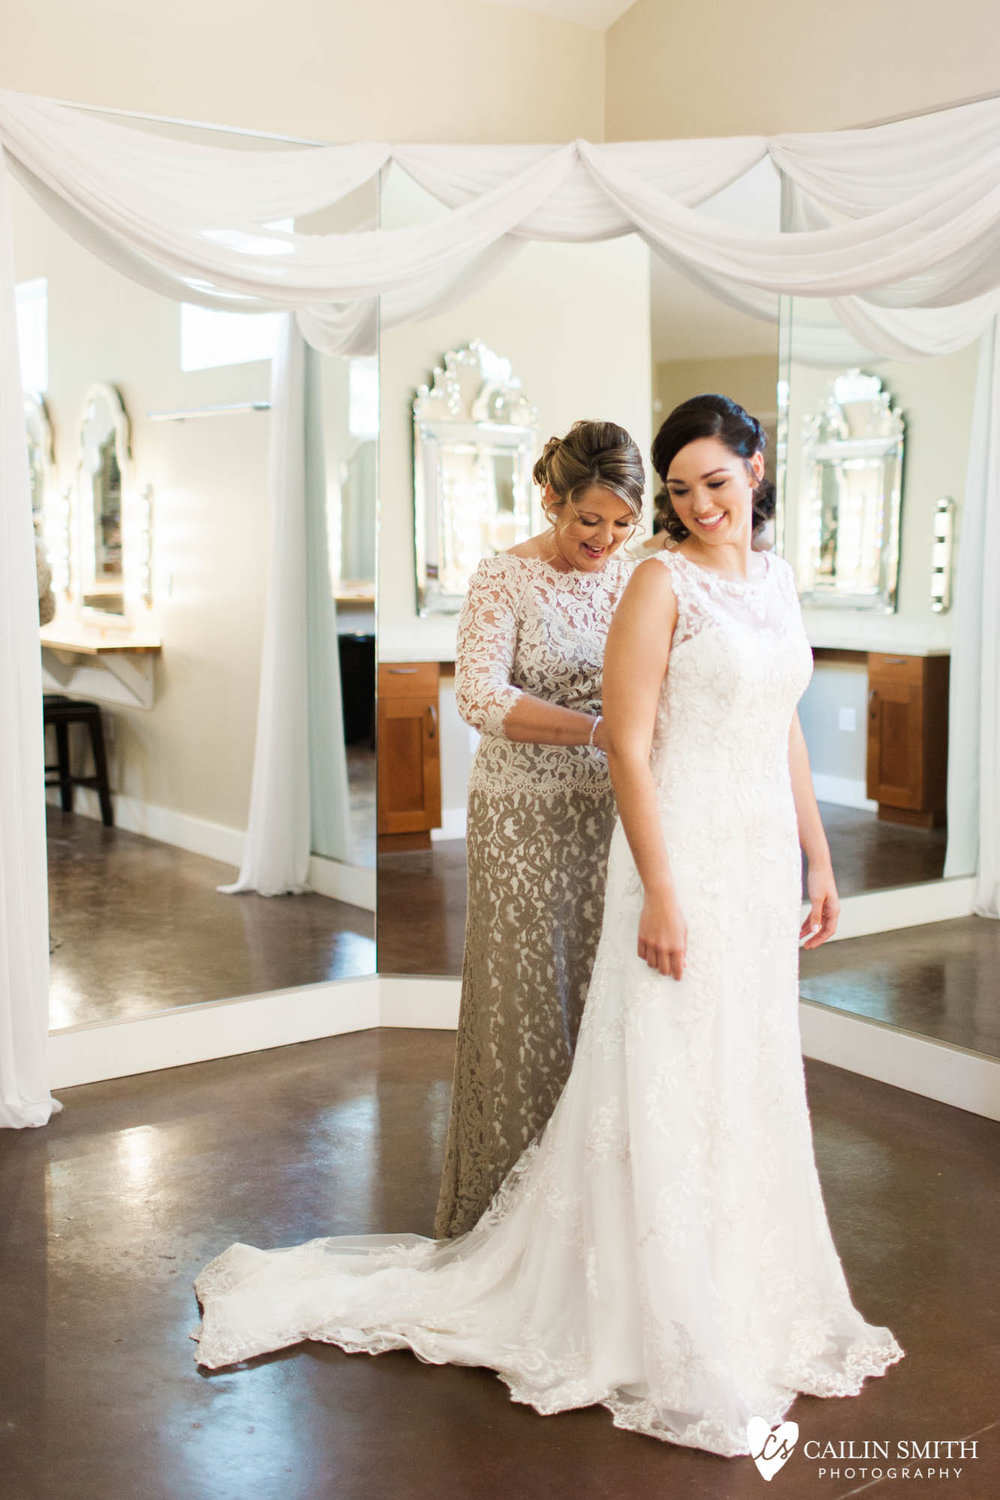 Bethany_Kyle_Bowing_Oaks_Plantation_Wedding_Photography_0012.jpg